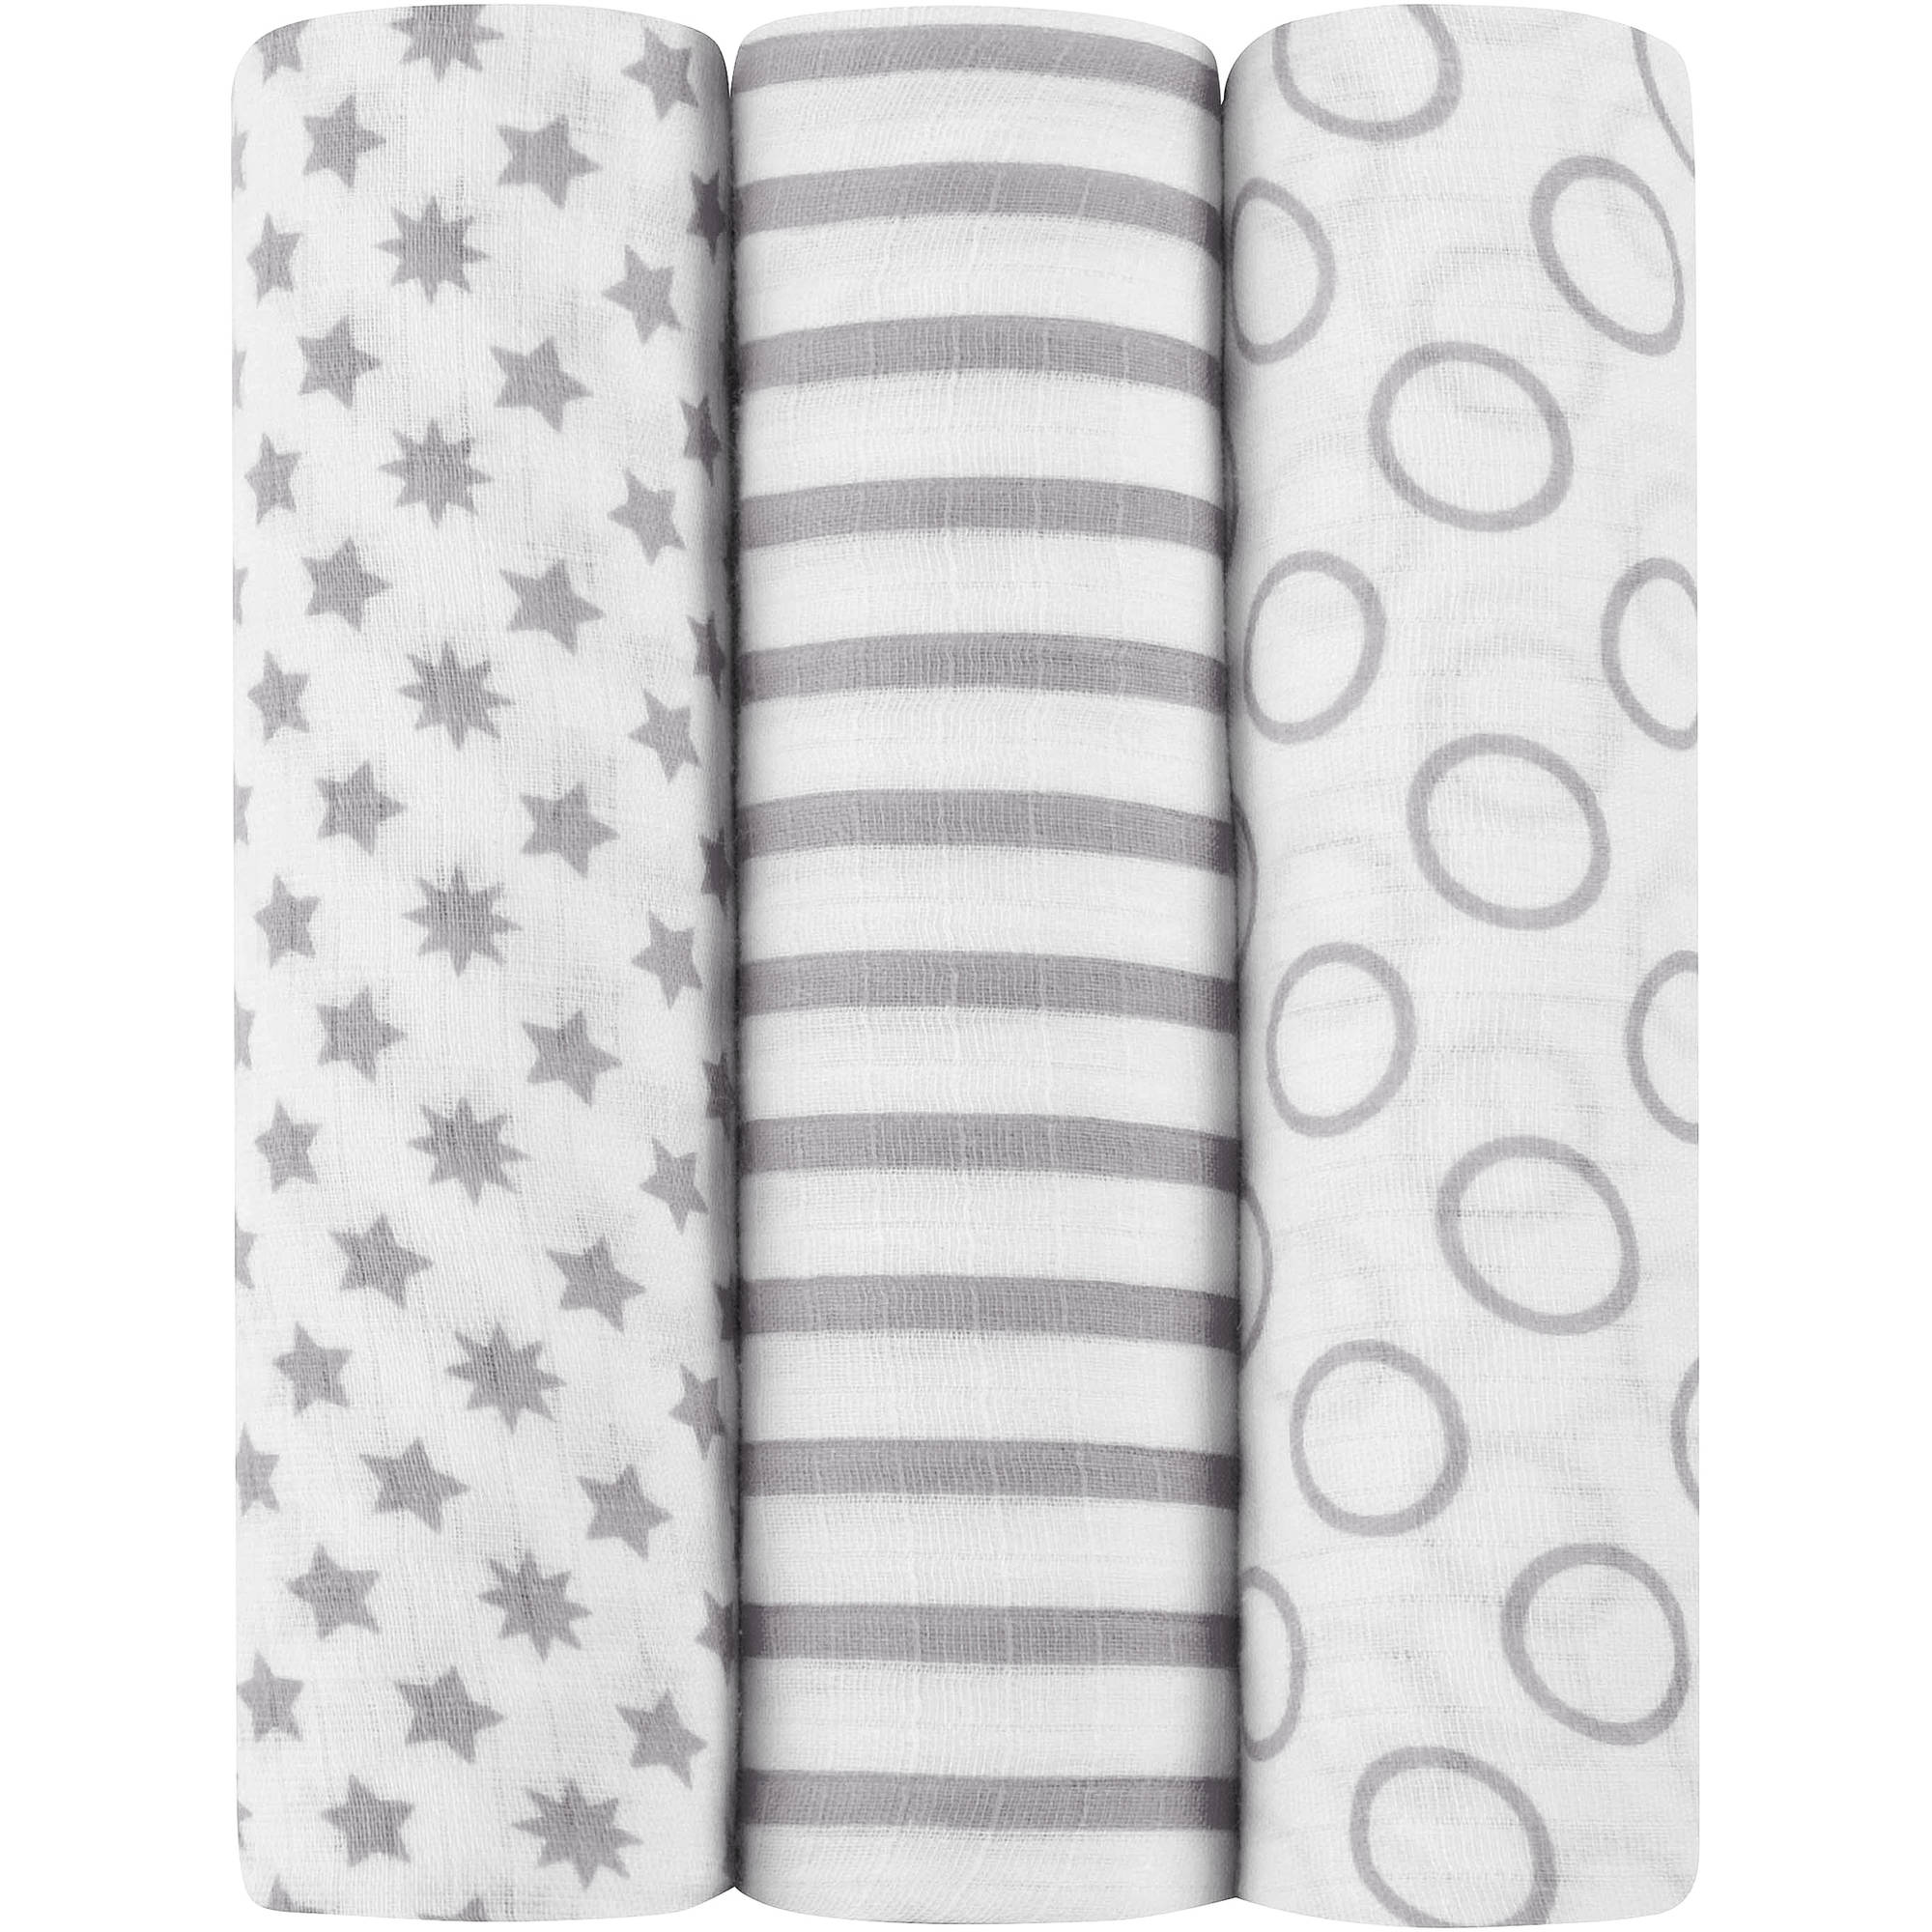 ideal baby by the makers of aden + anais Muslin Swaddles, 3pk, Pint Size